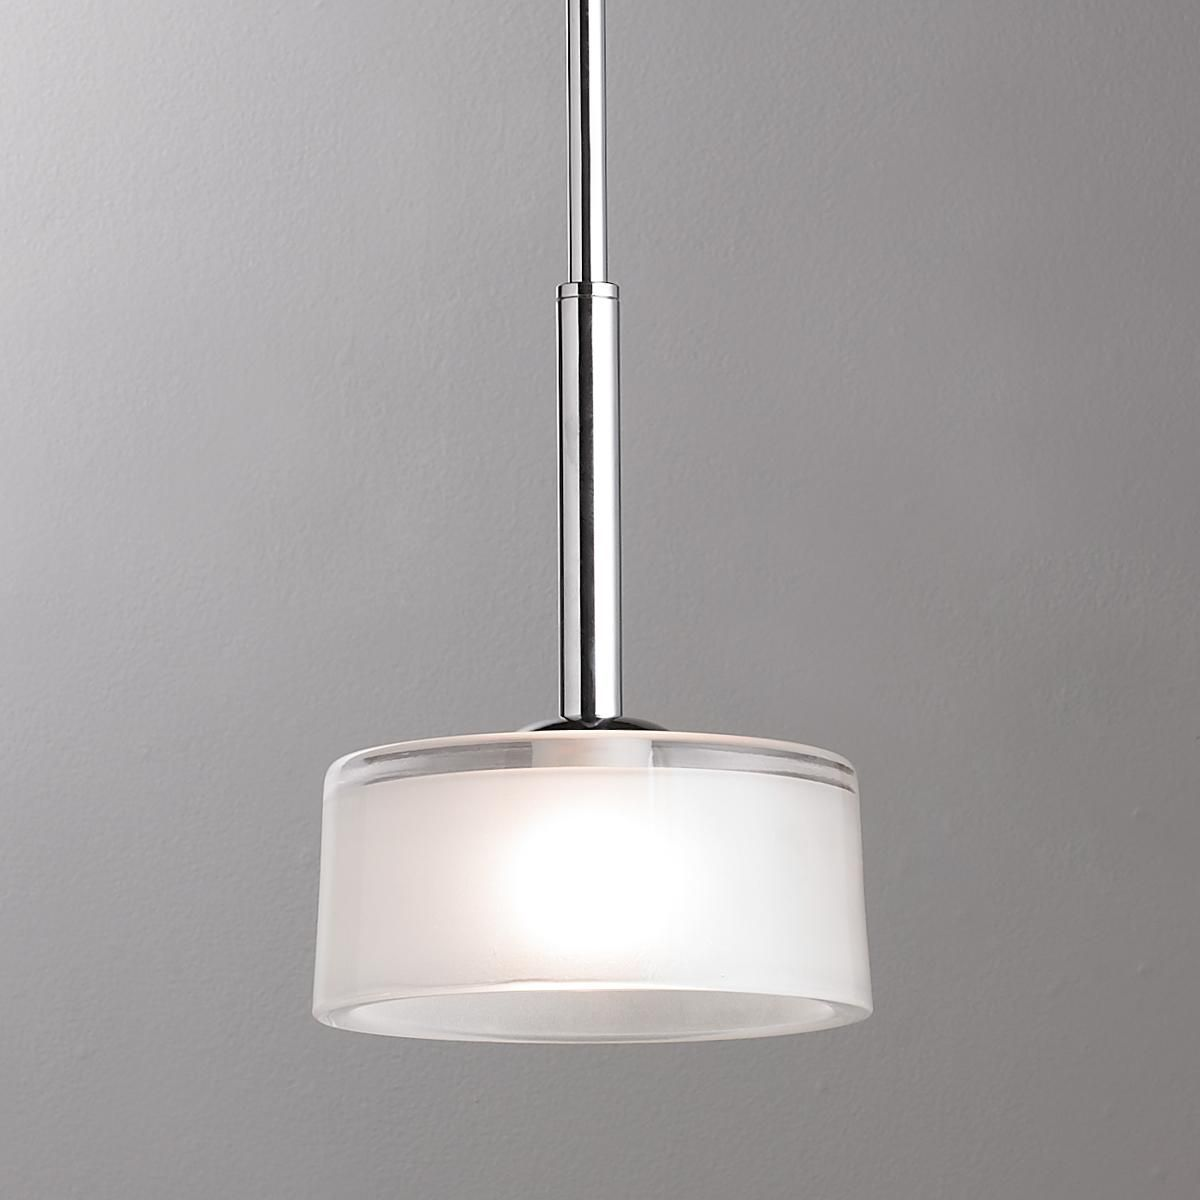 Perfect For Bathroom Vanities And Kitchens The Xenon Halogen Bulb Gives A Bright White Light Softened By Frosted Gl